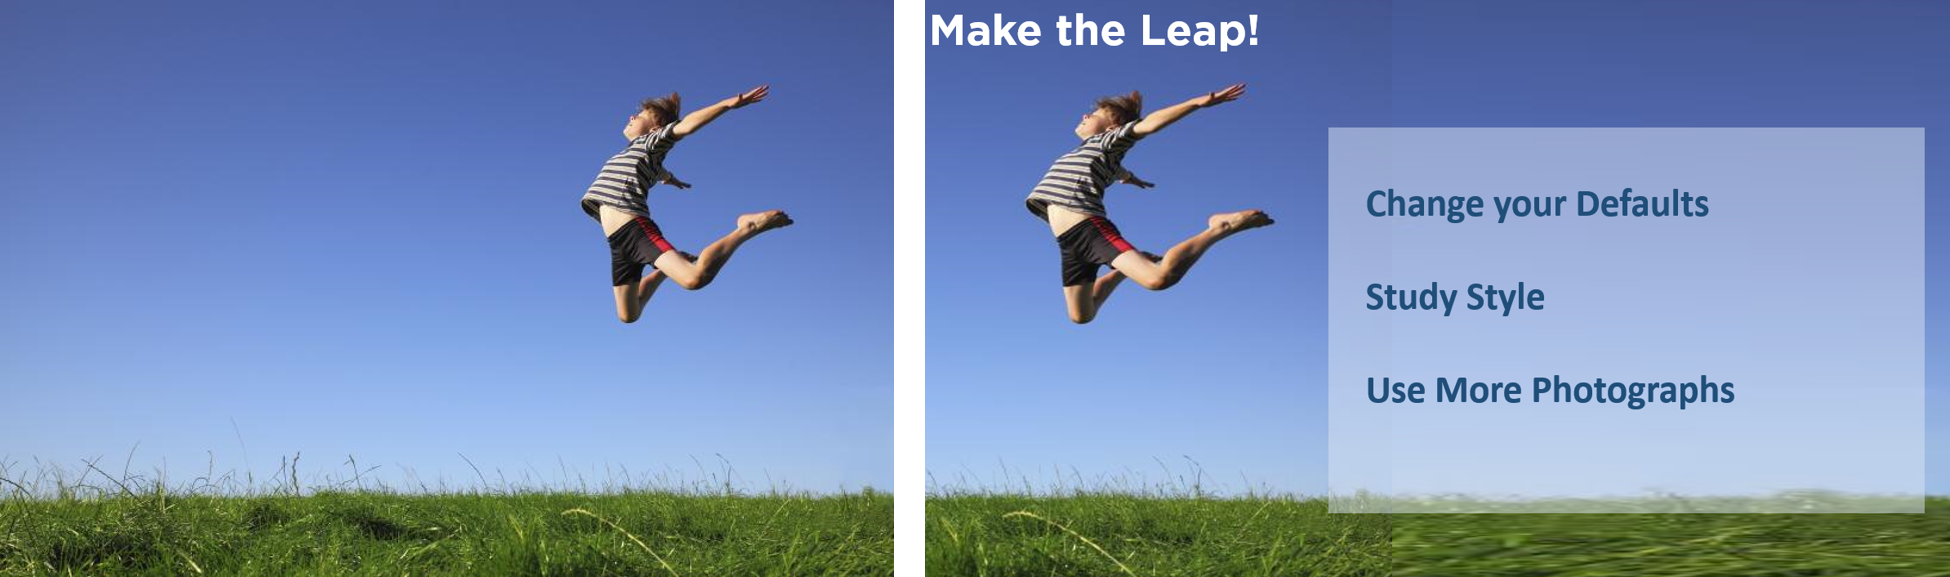 Screenshot of identical images of boy jumping in the air with one image having text added.